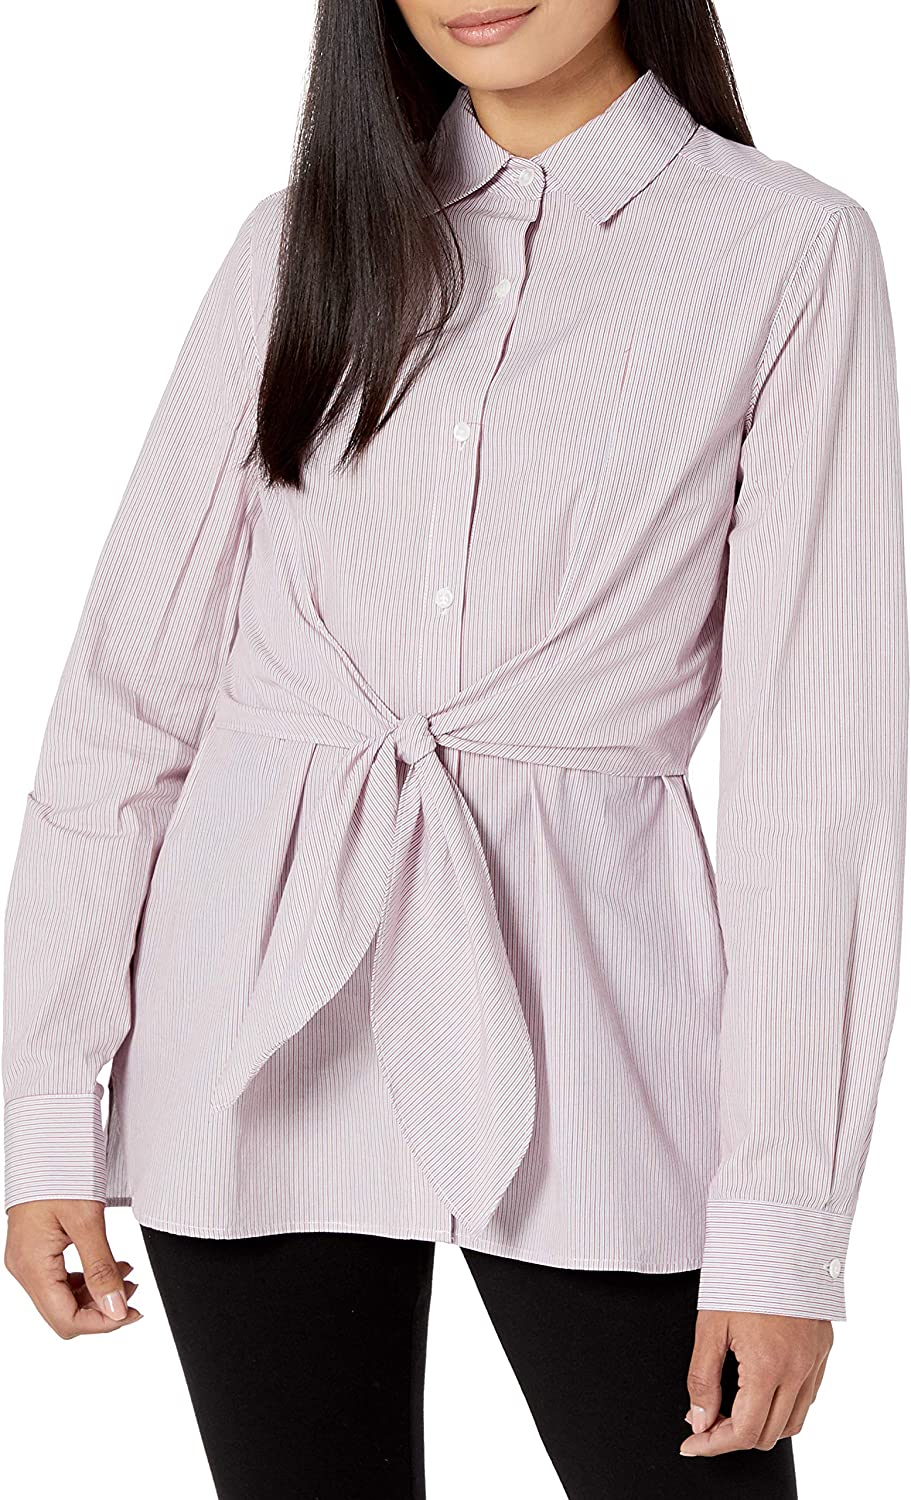 Lark & Ro Women's Standard Woven Collared Top W/Roll Up Sleeve with Button